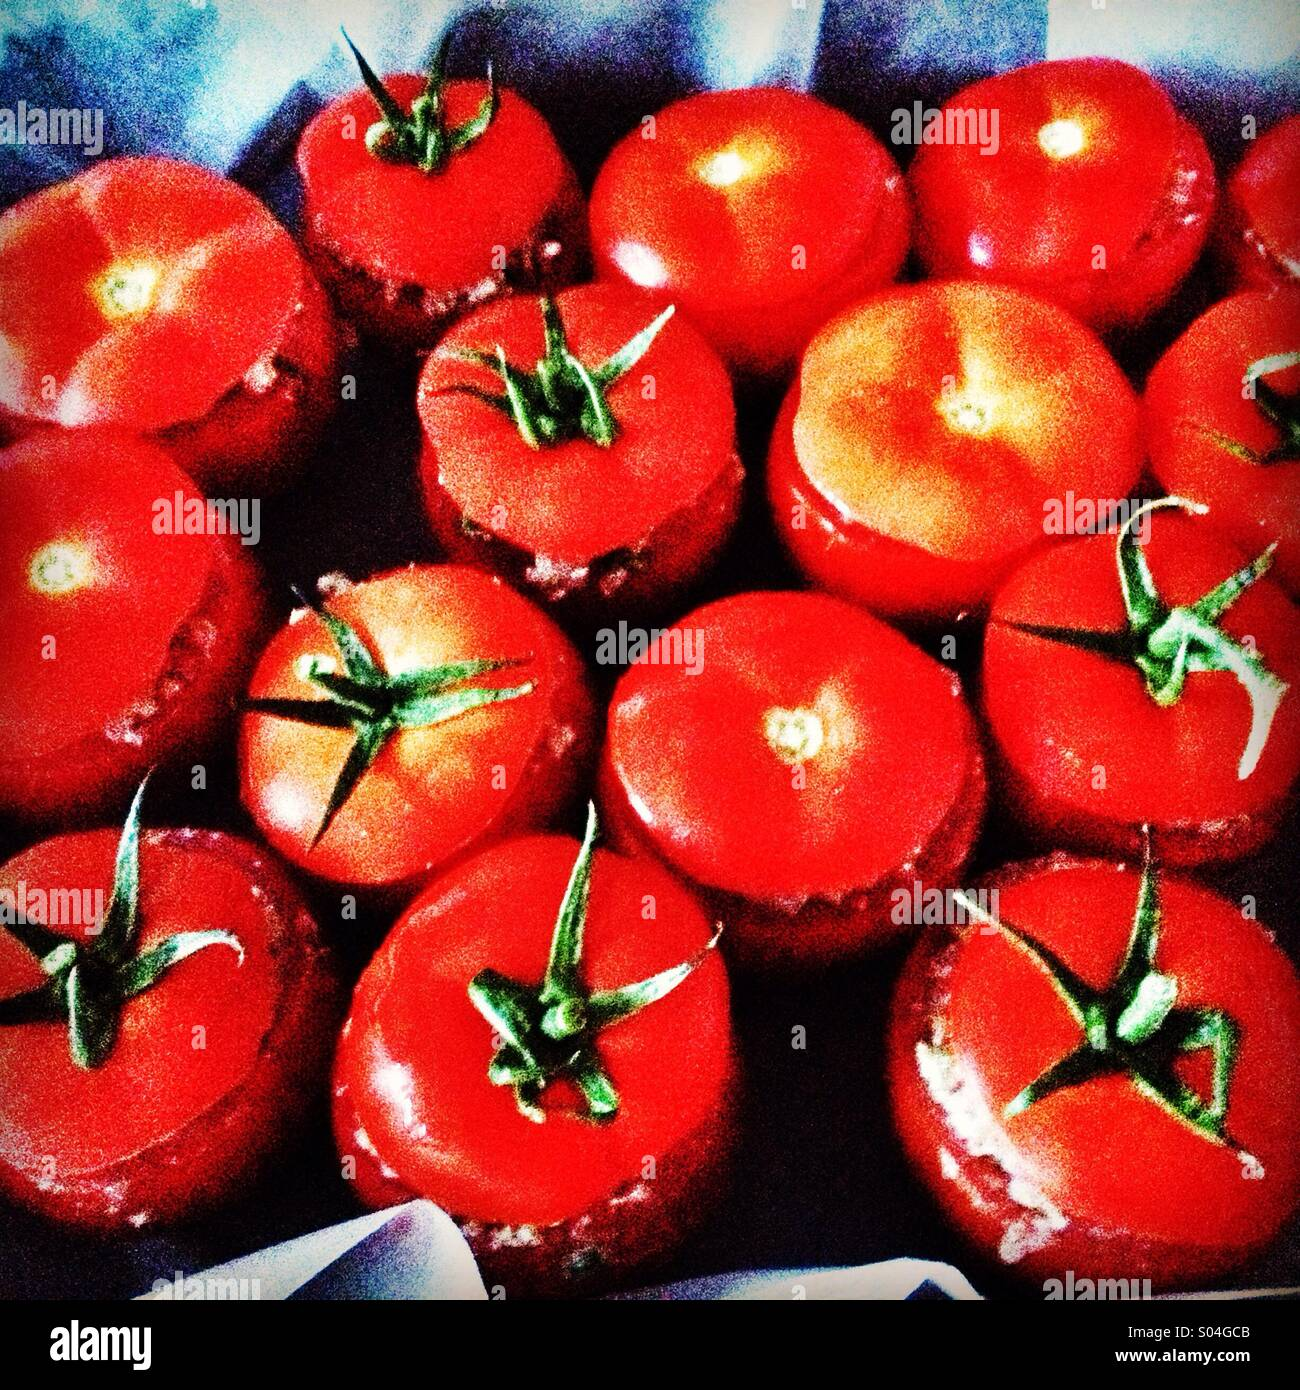 Stuffed tomatoes - Stock Image